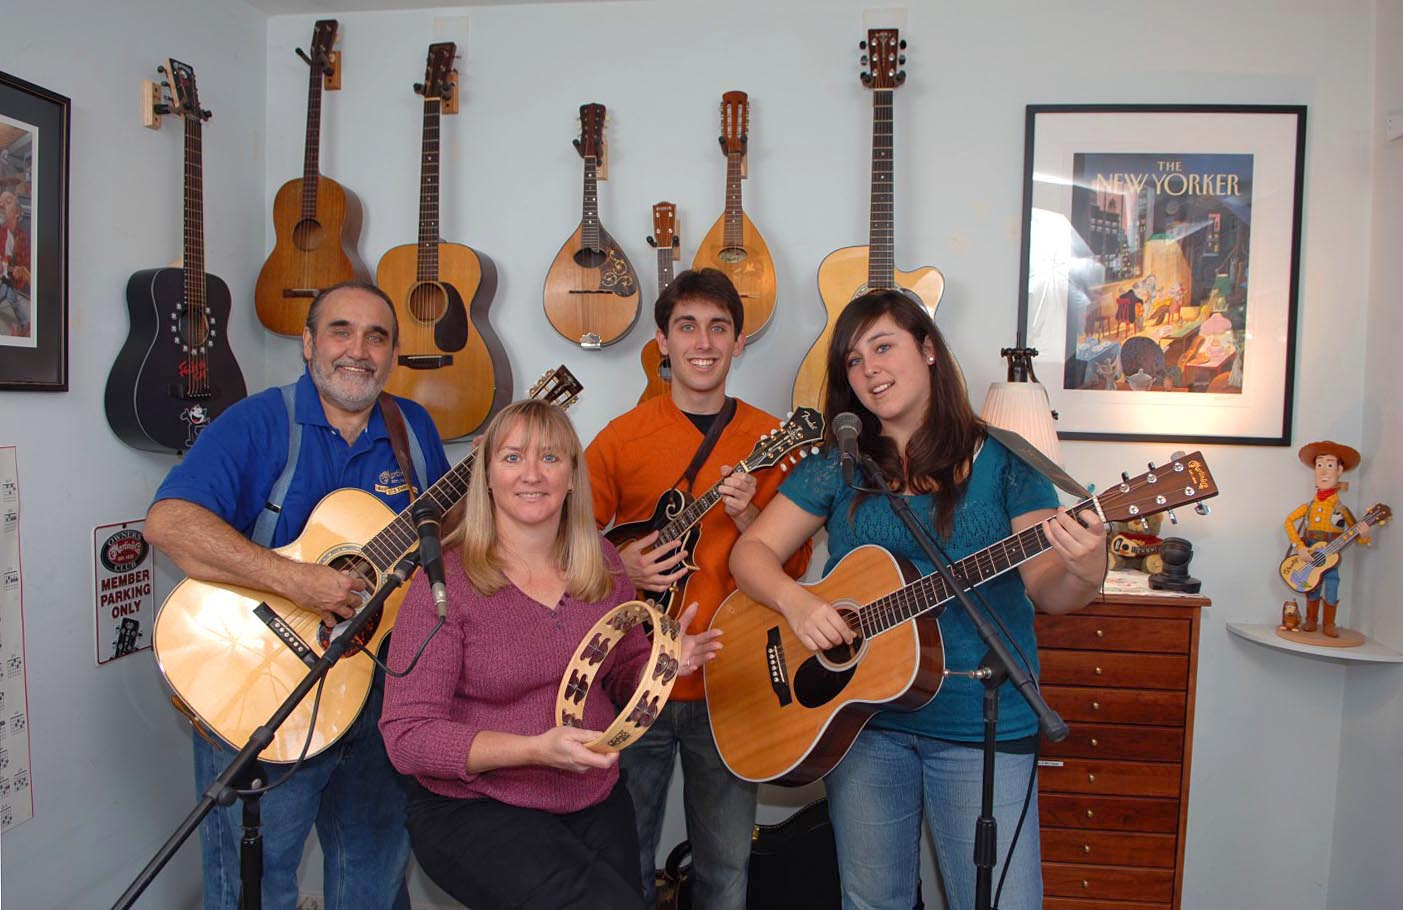 Keller family band 2008